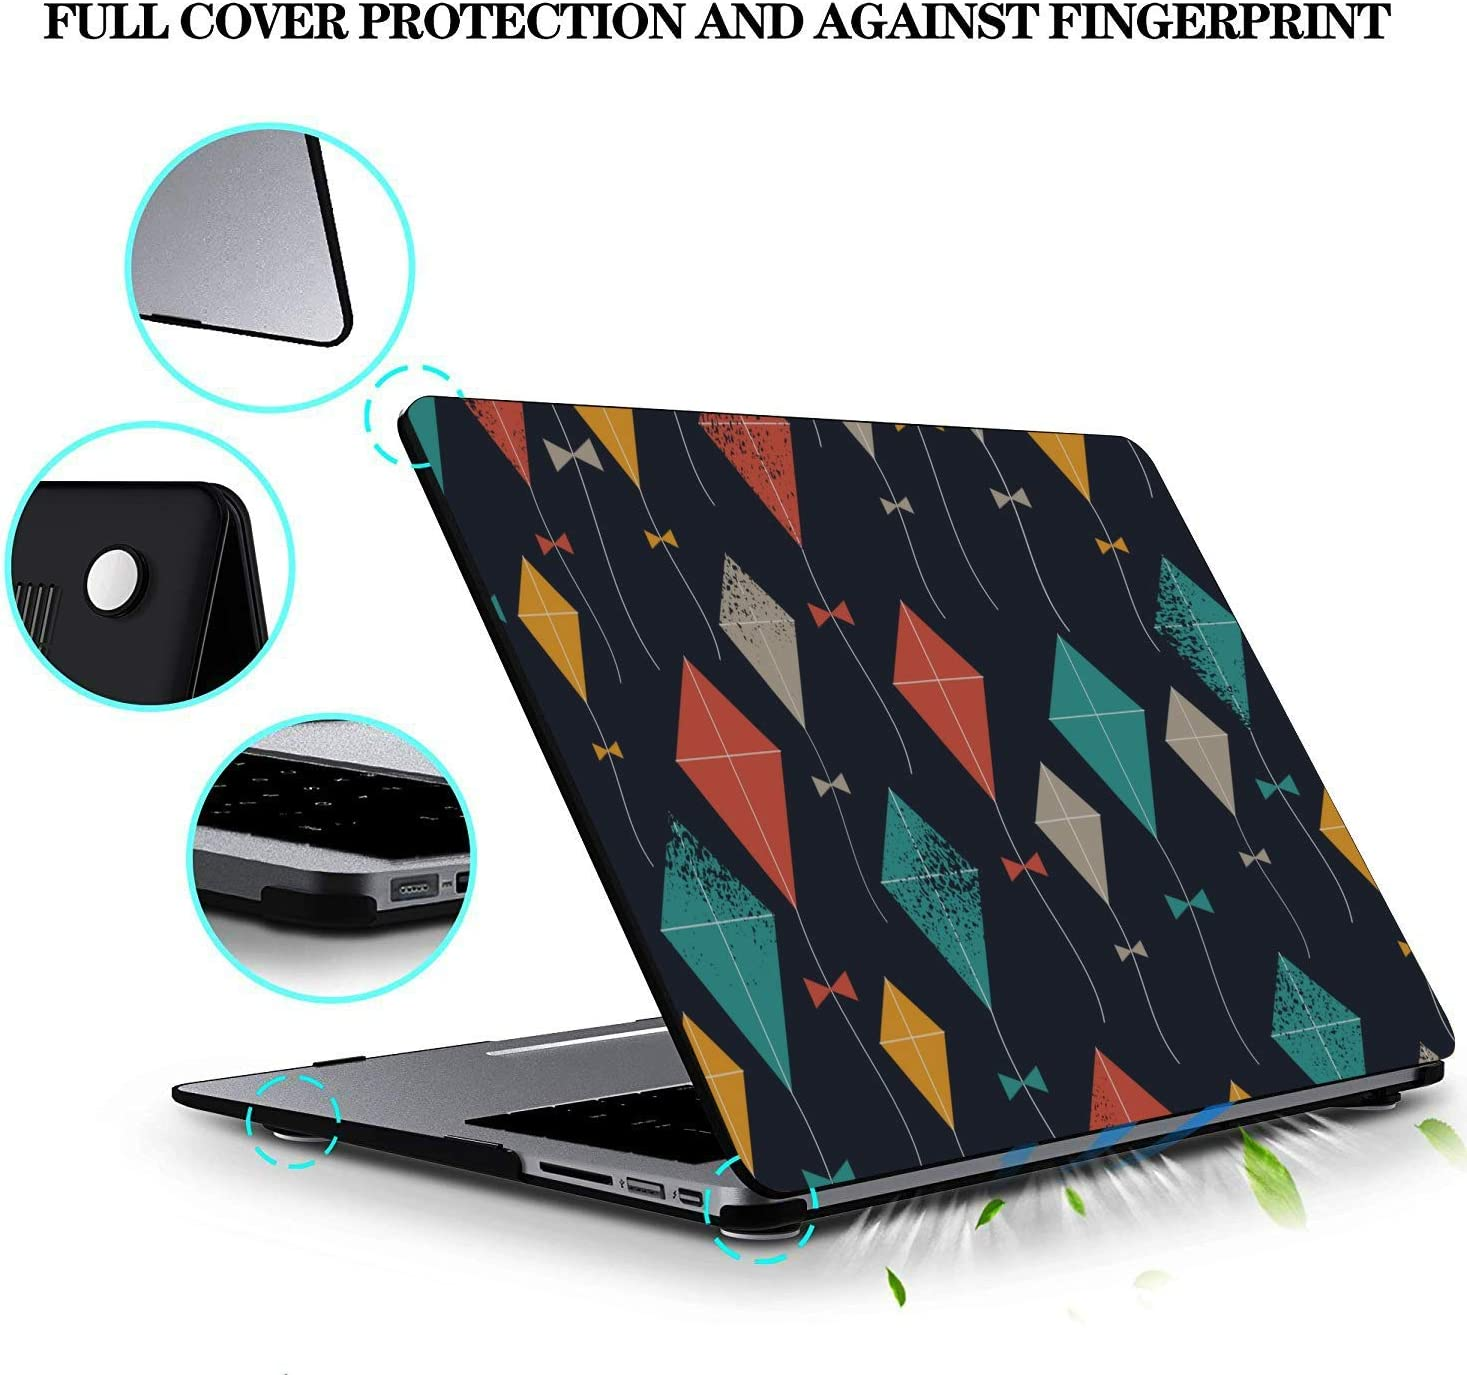 13 Inch MacBook Case Spring Children Play Game Toy Kite Plastic Hard Shell Compatible Mac Air 11 Pro 13 15 Mac Book Pro Cover Protection for MacBook 2016-2019 Version